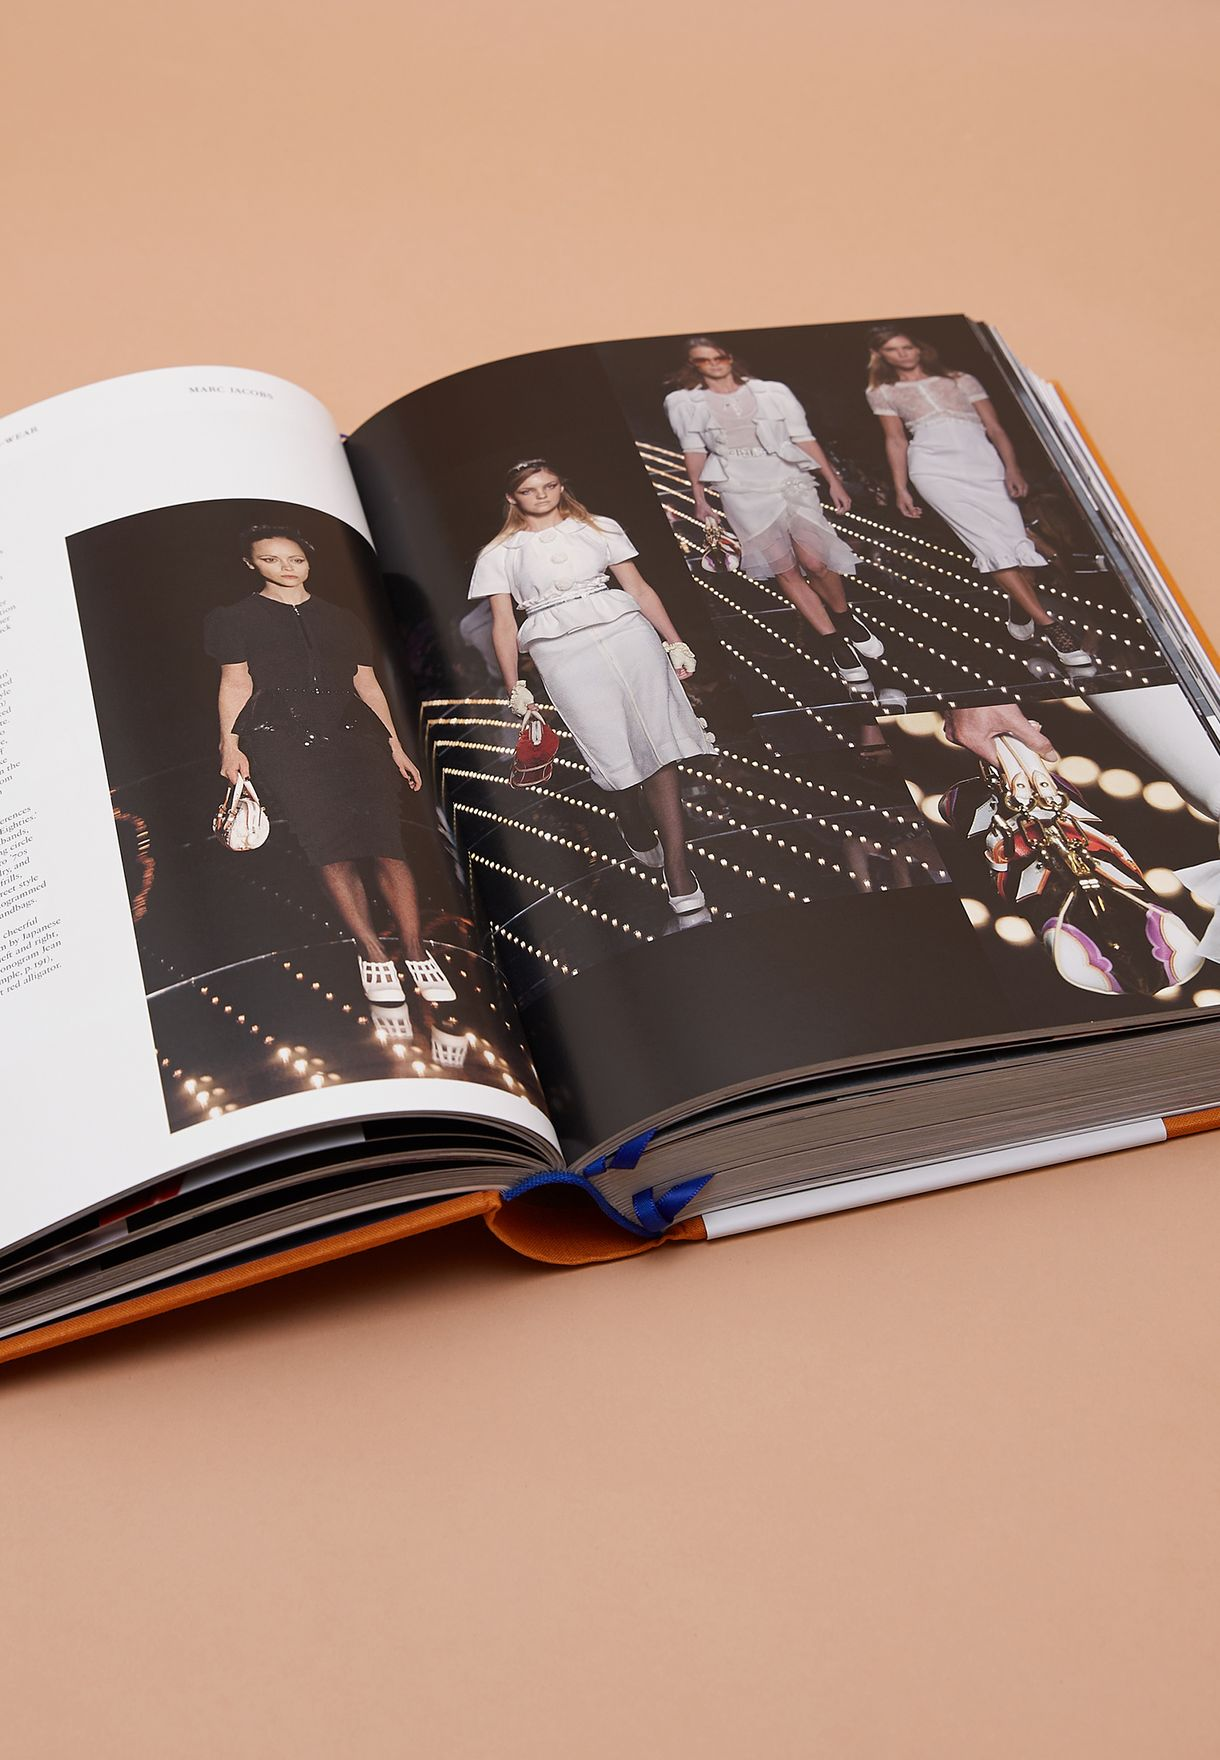 Louis Vuitton : Catwalk Coffee Table Book